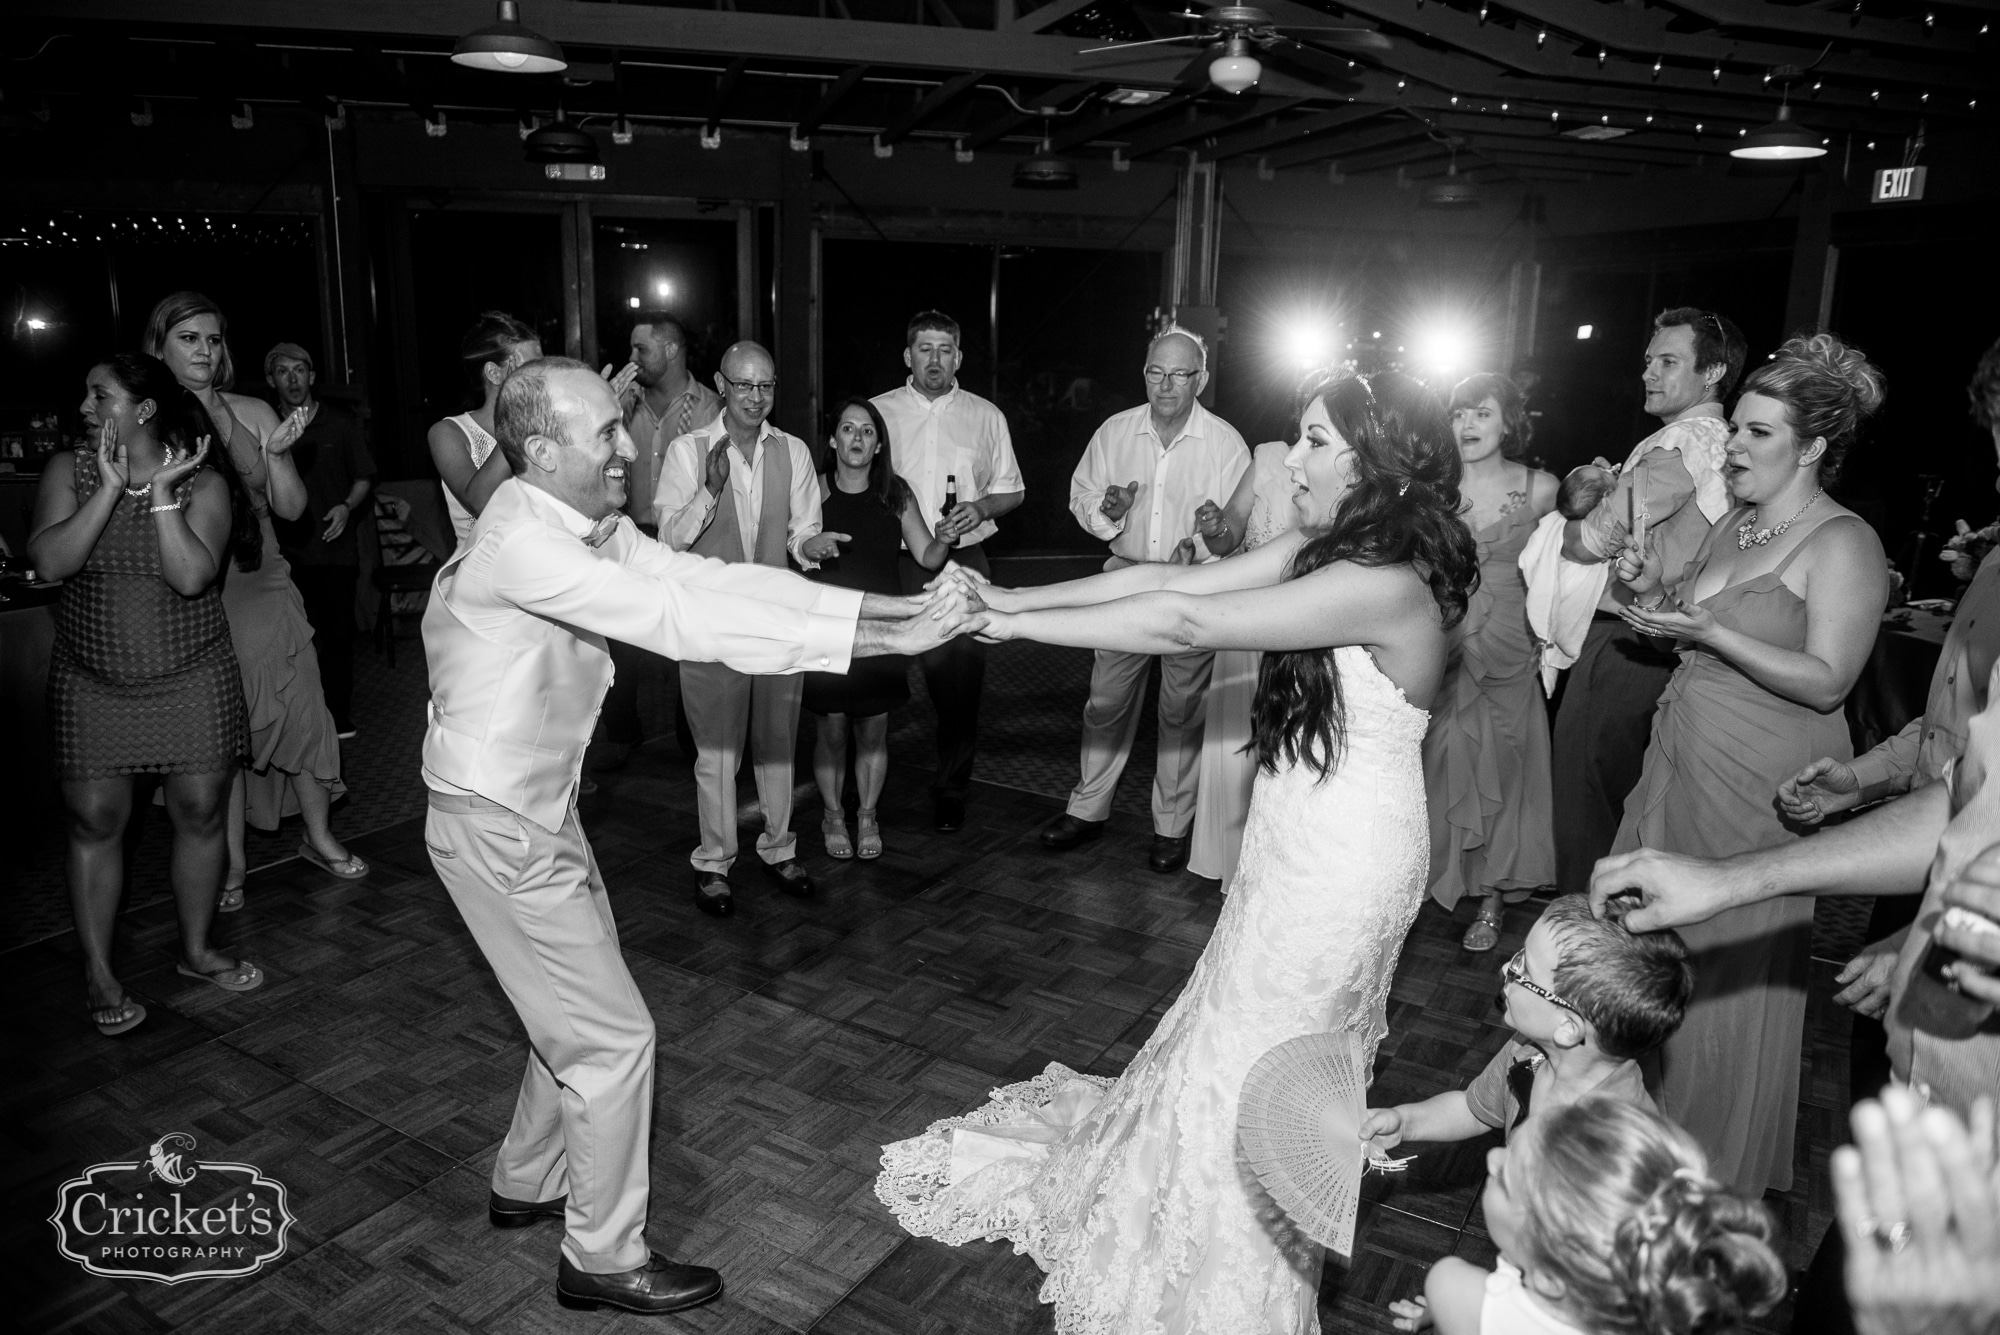 Bride and groom holding outstretched hands on dance floor